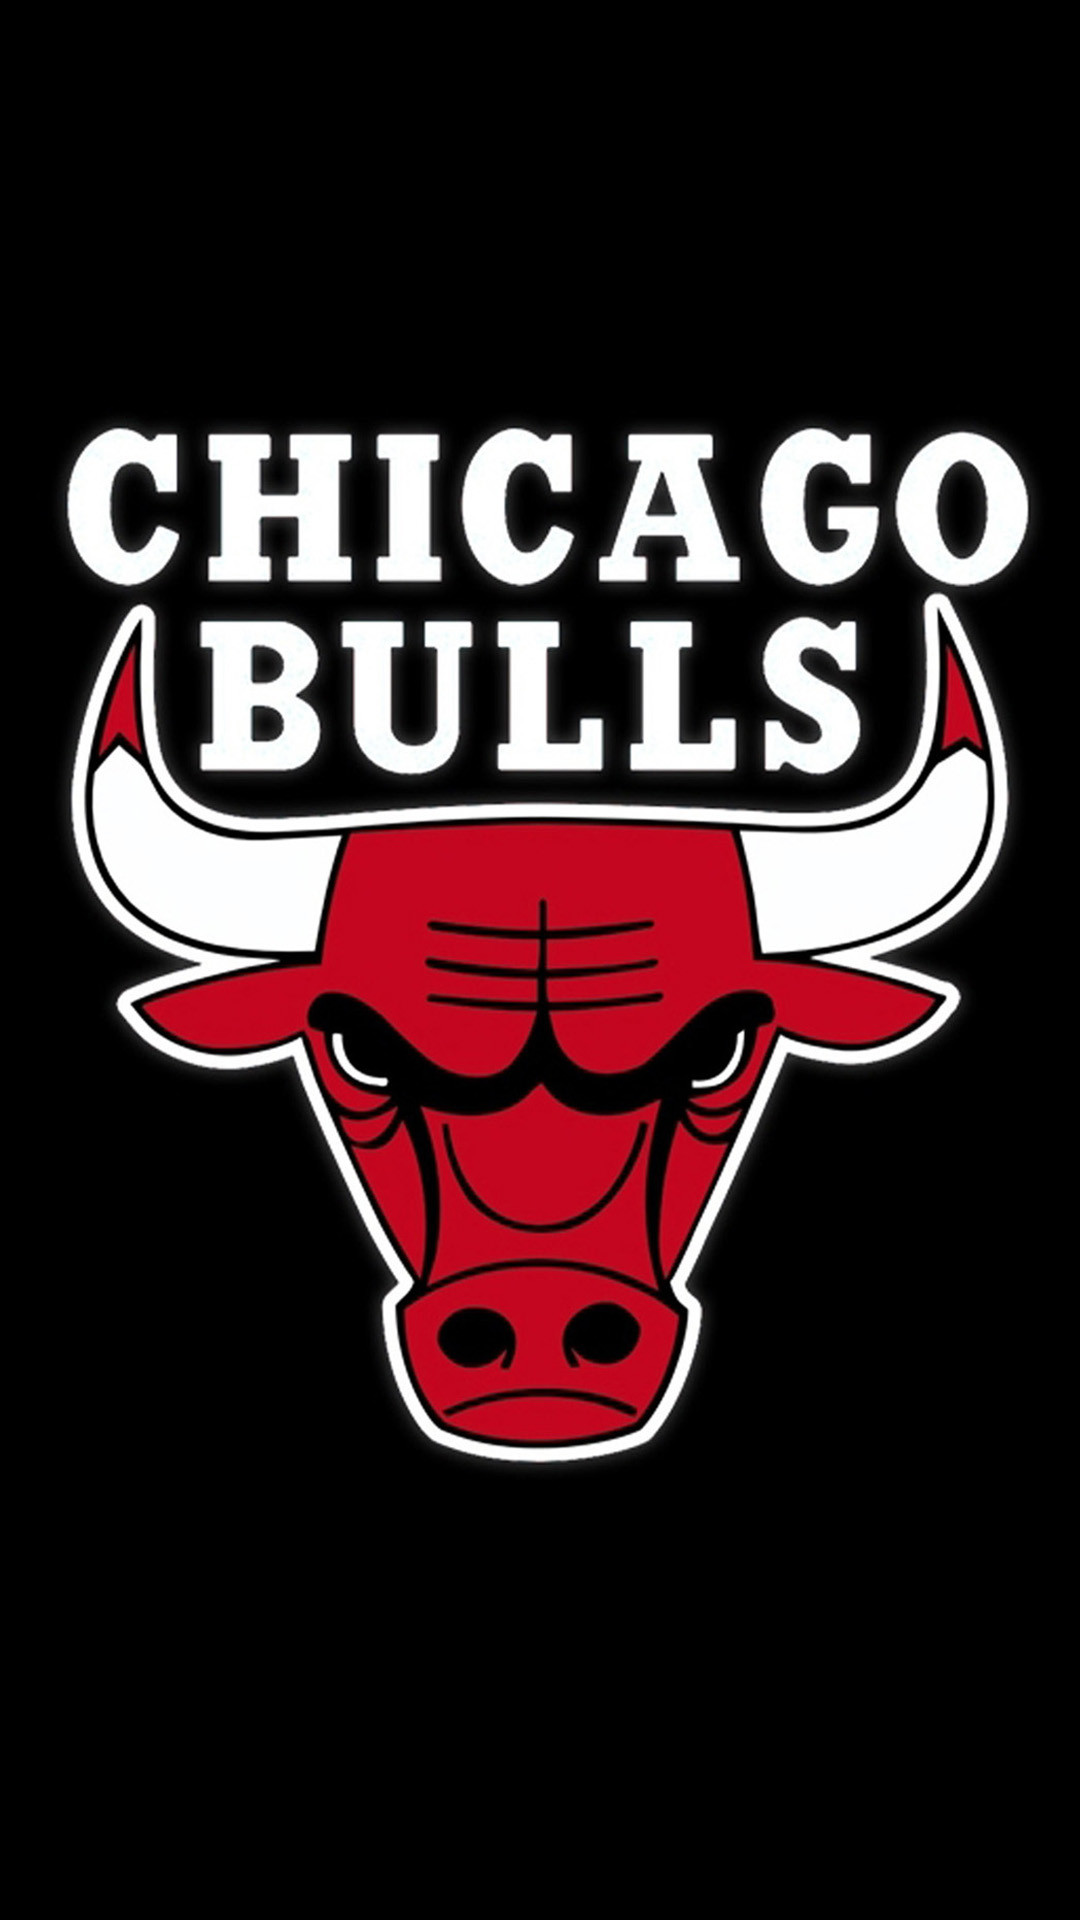 Go Bulls! I am very excited about the squad.